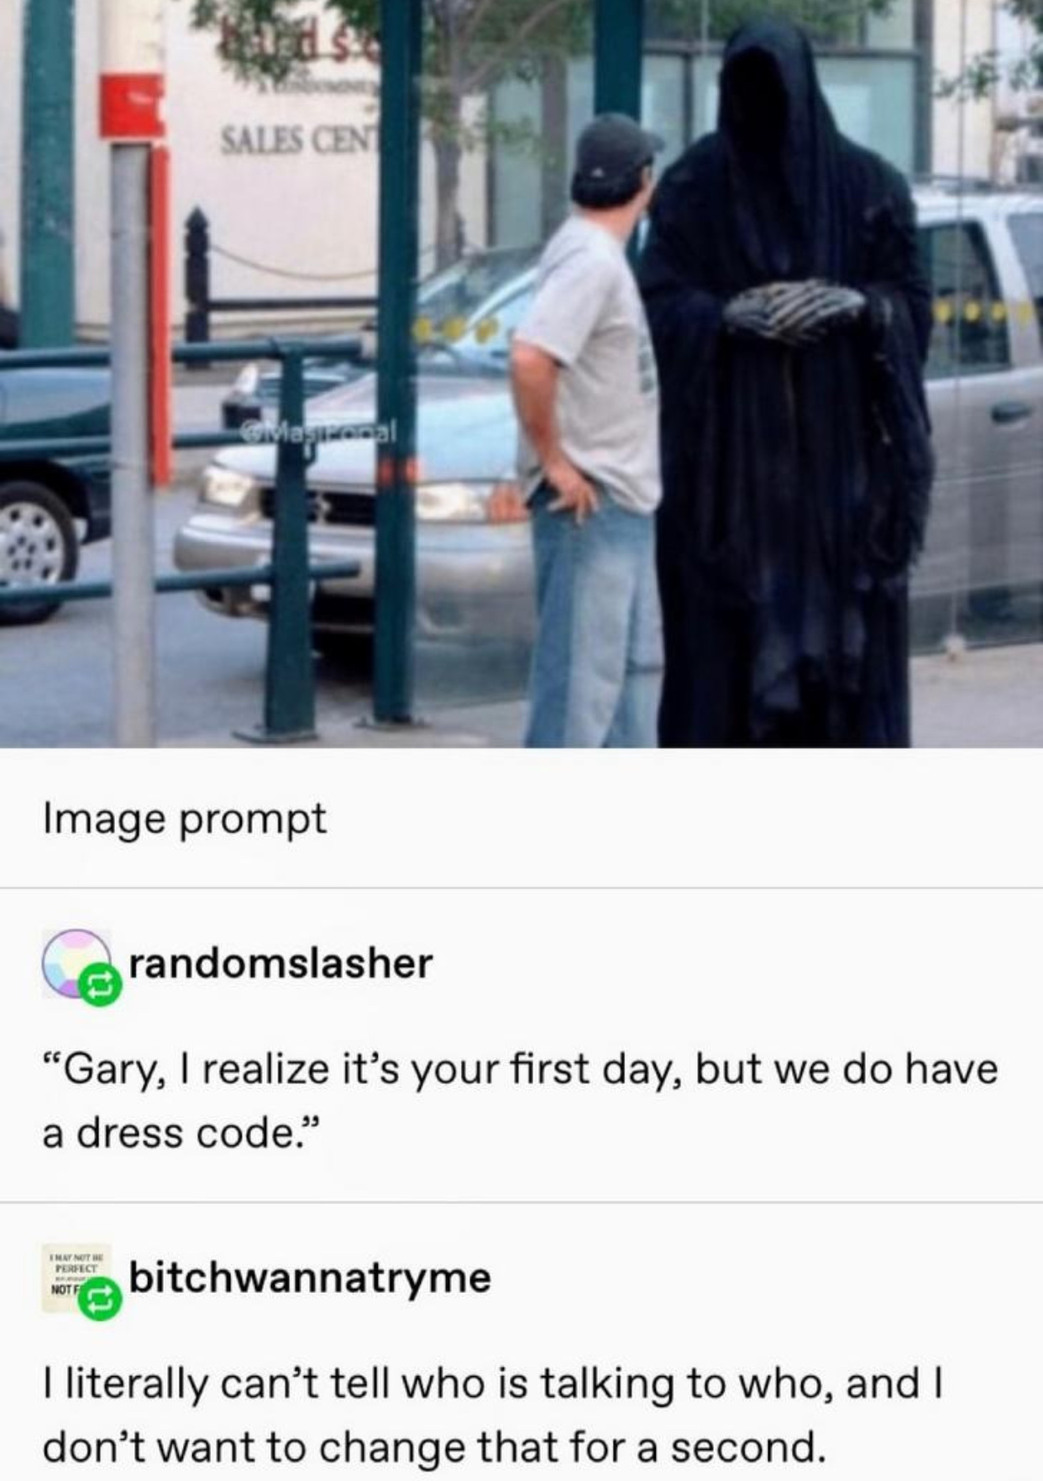 I just loved this post on Tumblr - meme